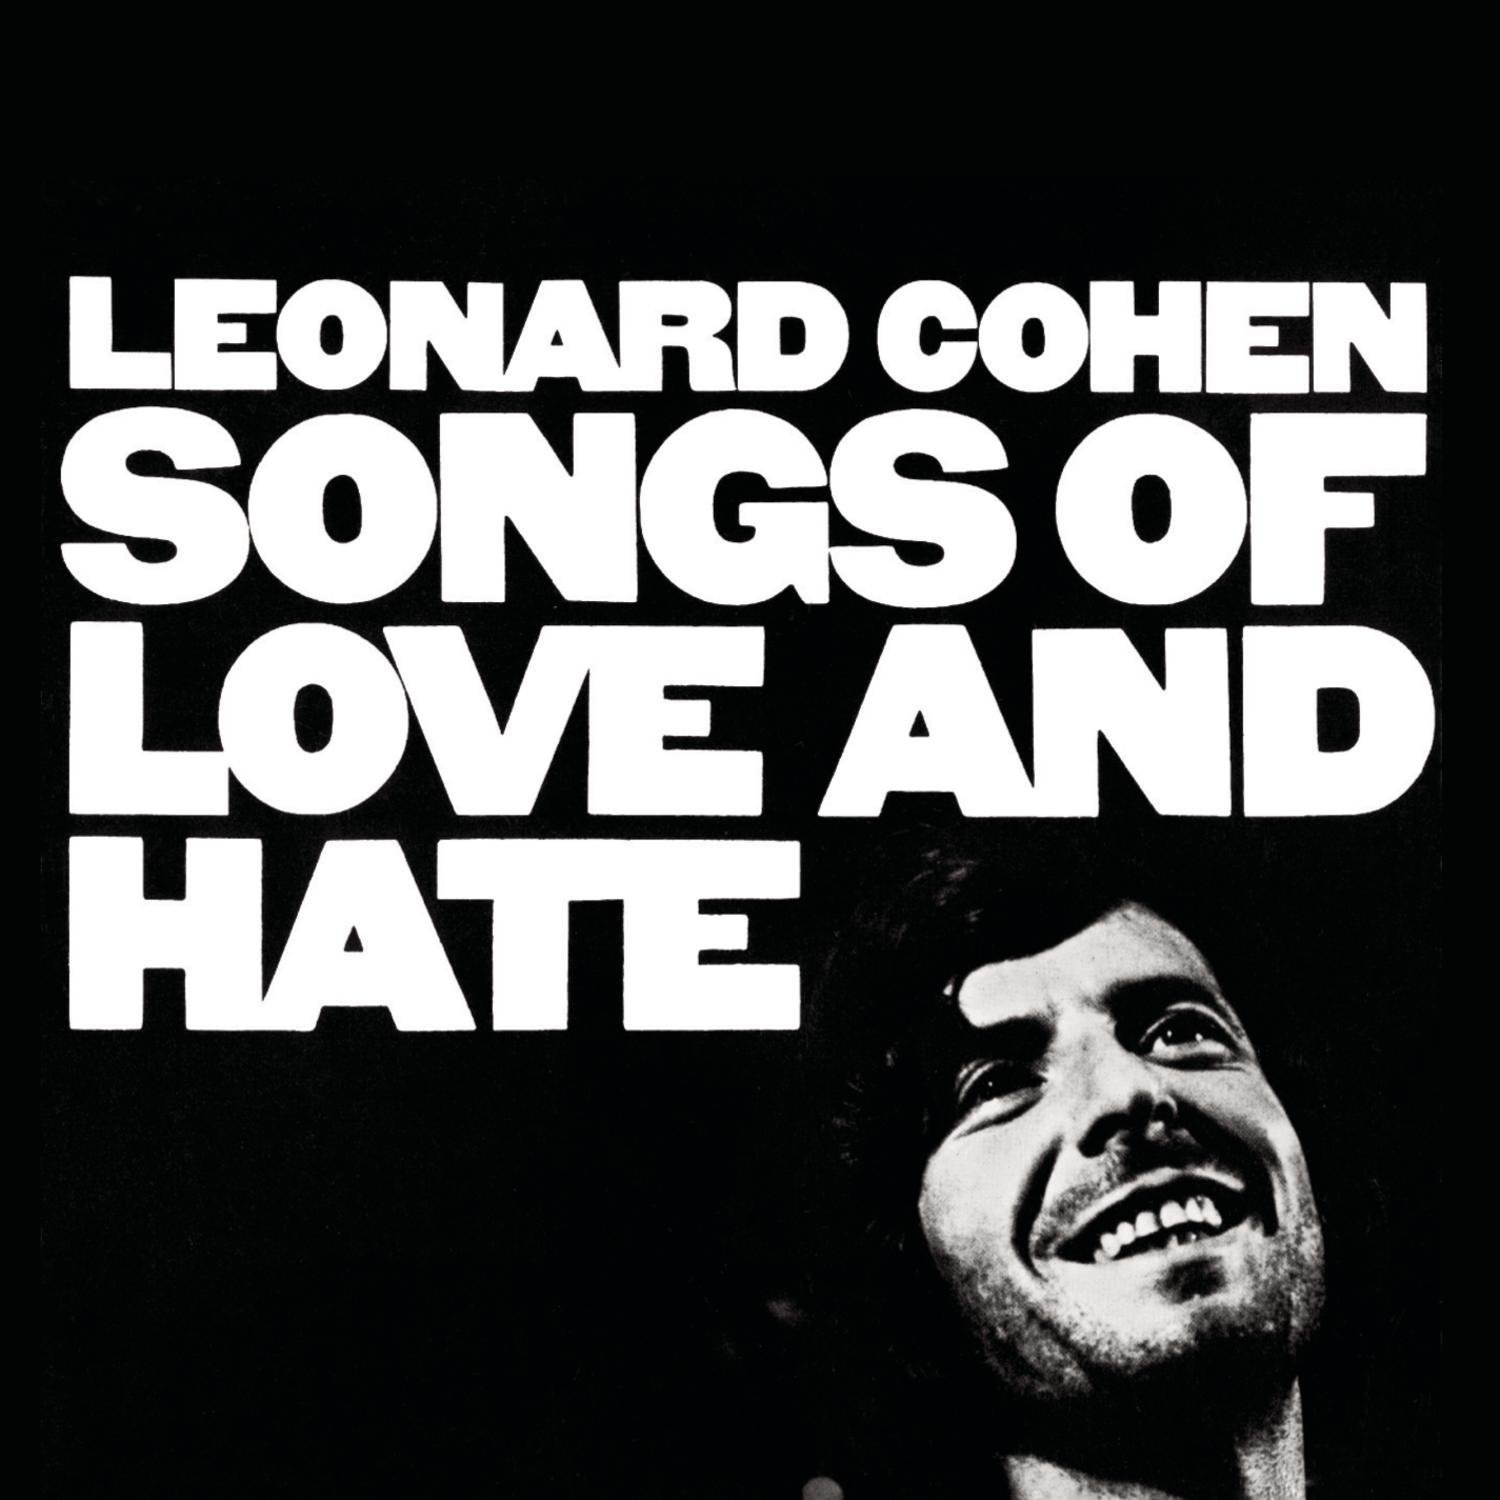 Leonard Cohen songs of love and hate review